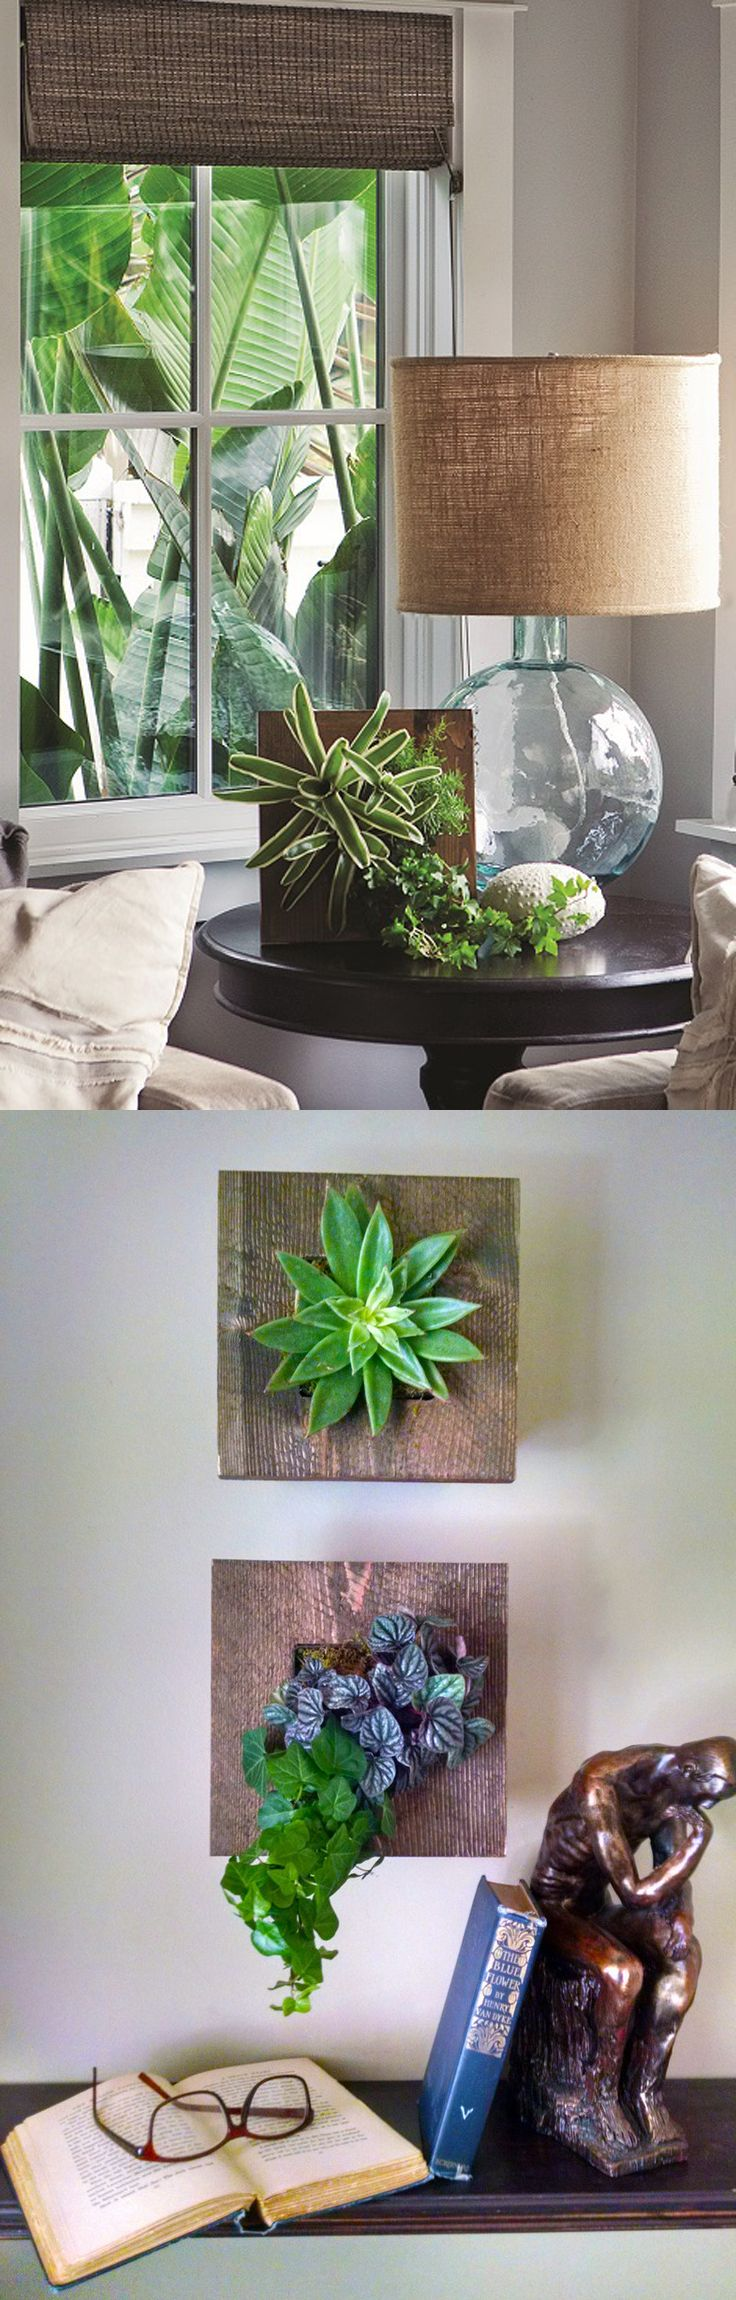 1000 ideas about living wall planter on pinterest for Living plant walls